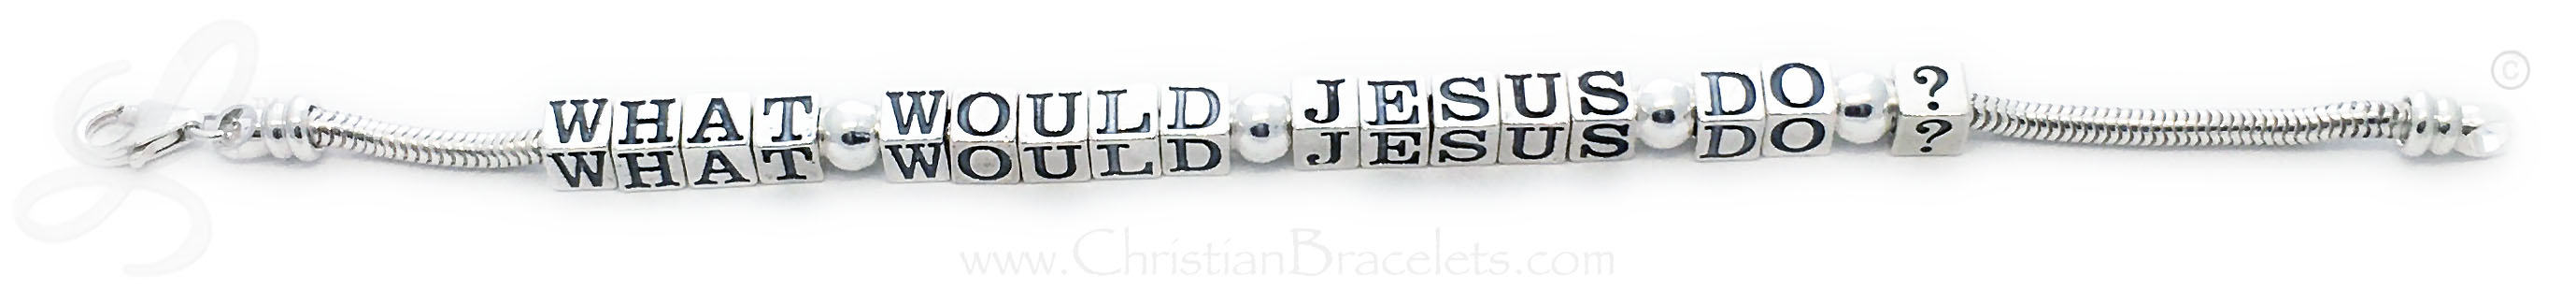 What Would Jesus Do? Bracelet Sterling Silver Pandora WWJD Bracelets